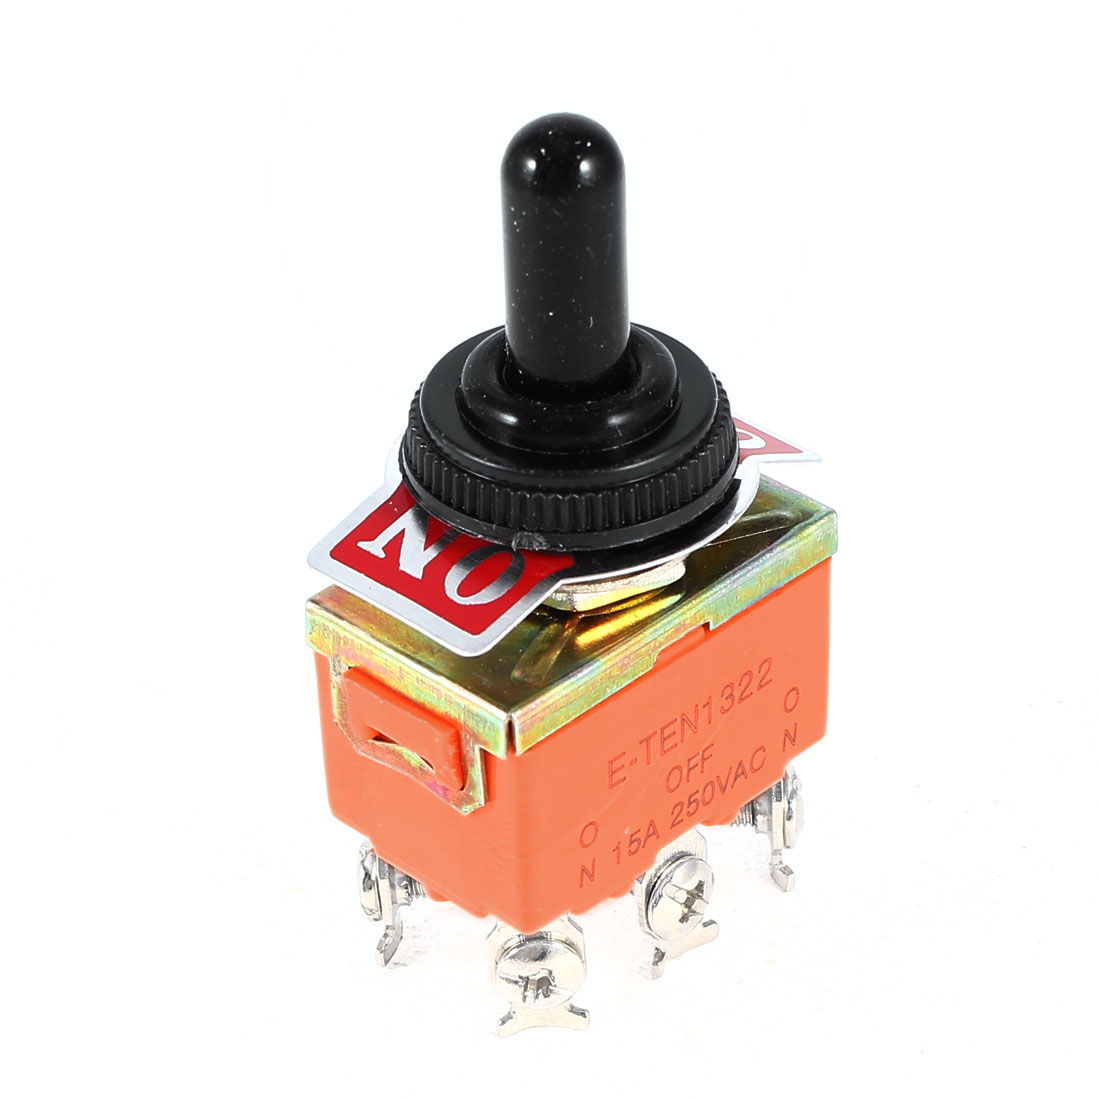 Waterproof Boot 6-Terminals ON/OFF/ON 3 Position DPDT Toggle Switch AC 250V 15A